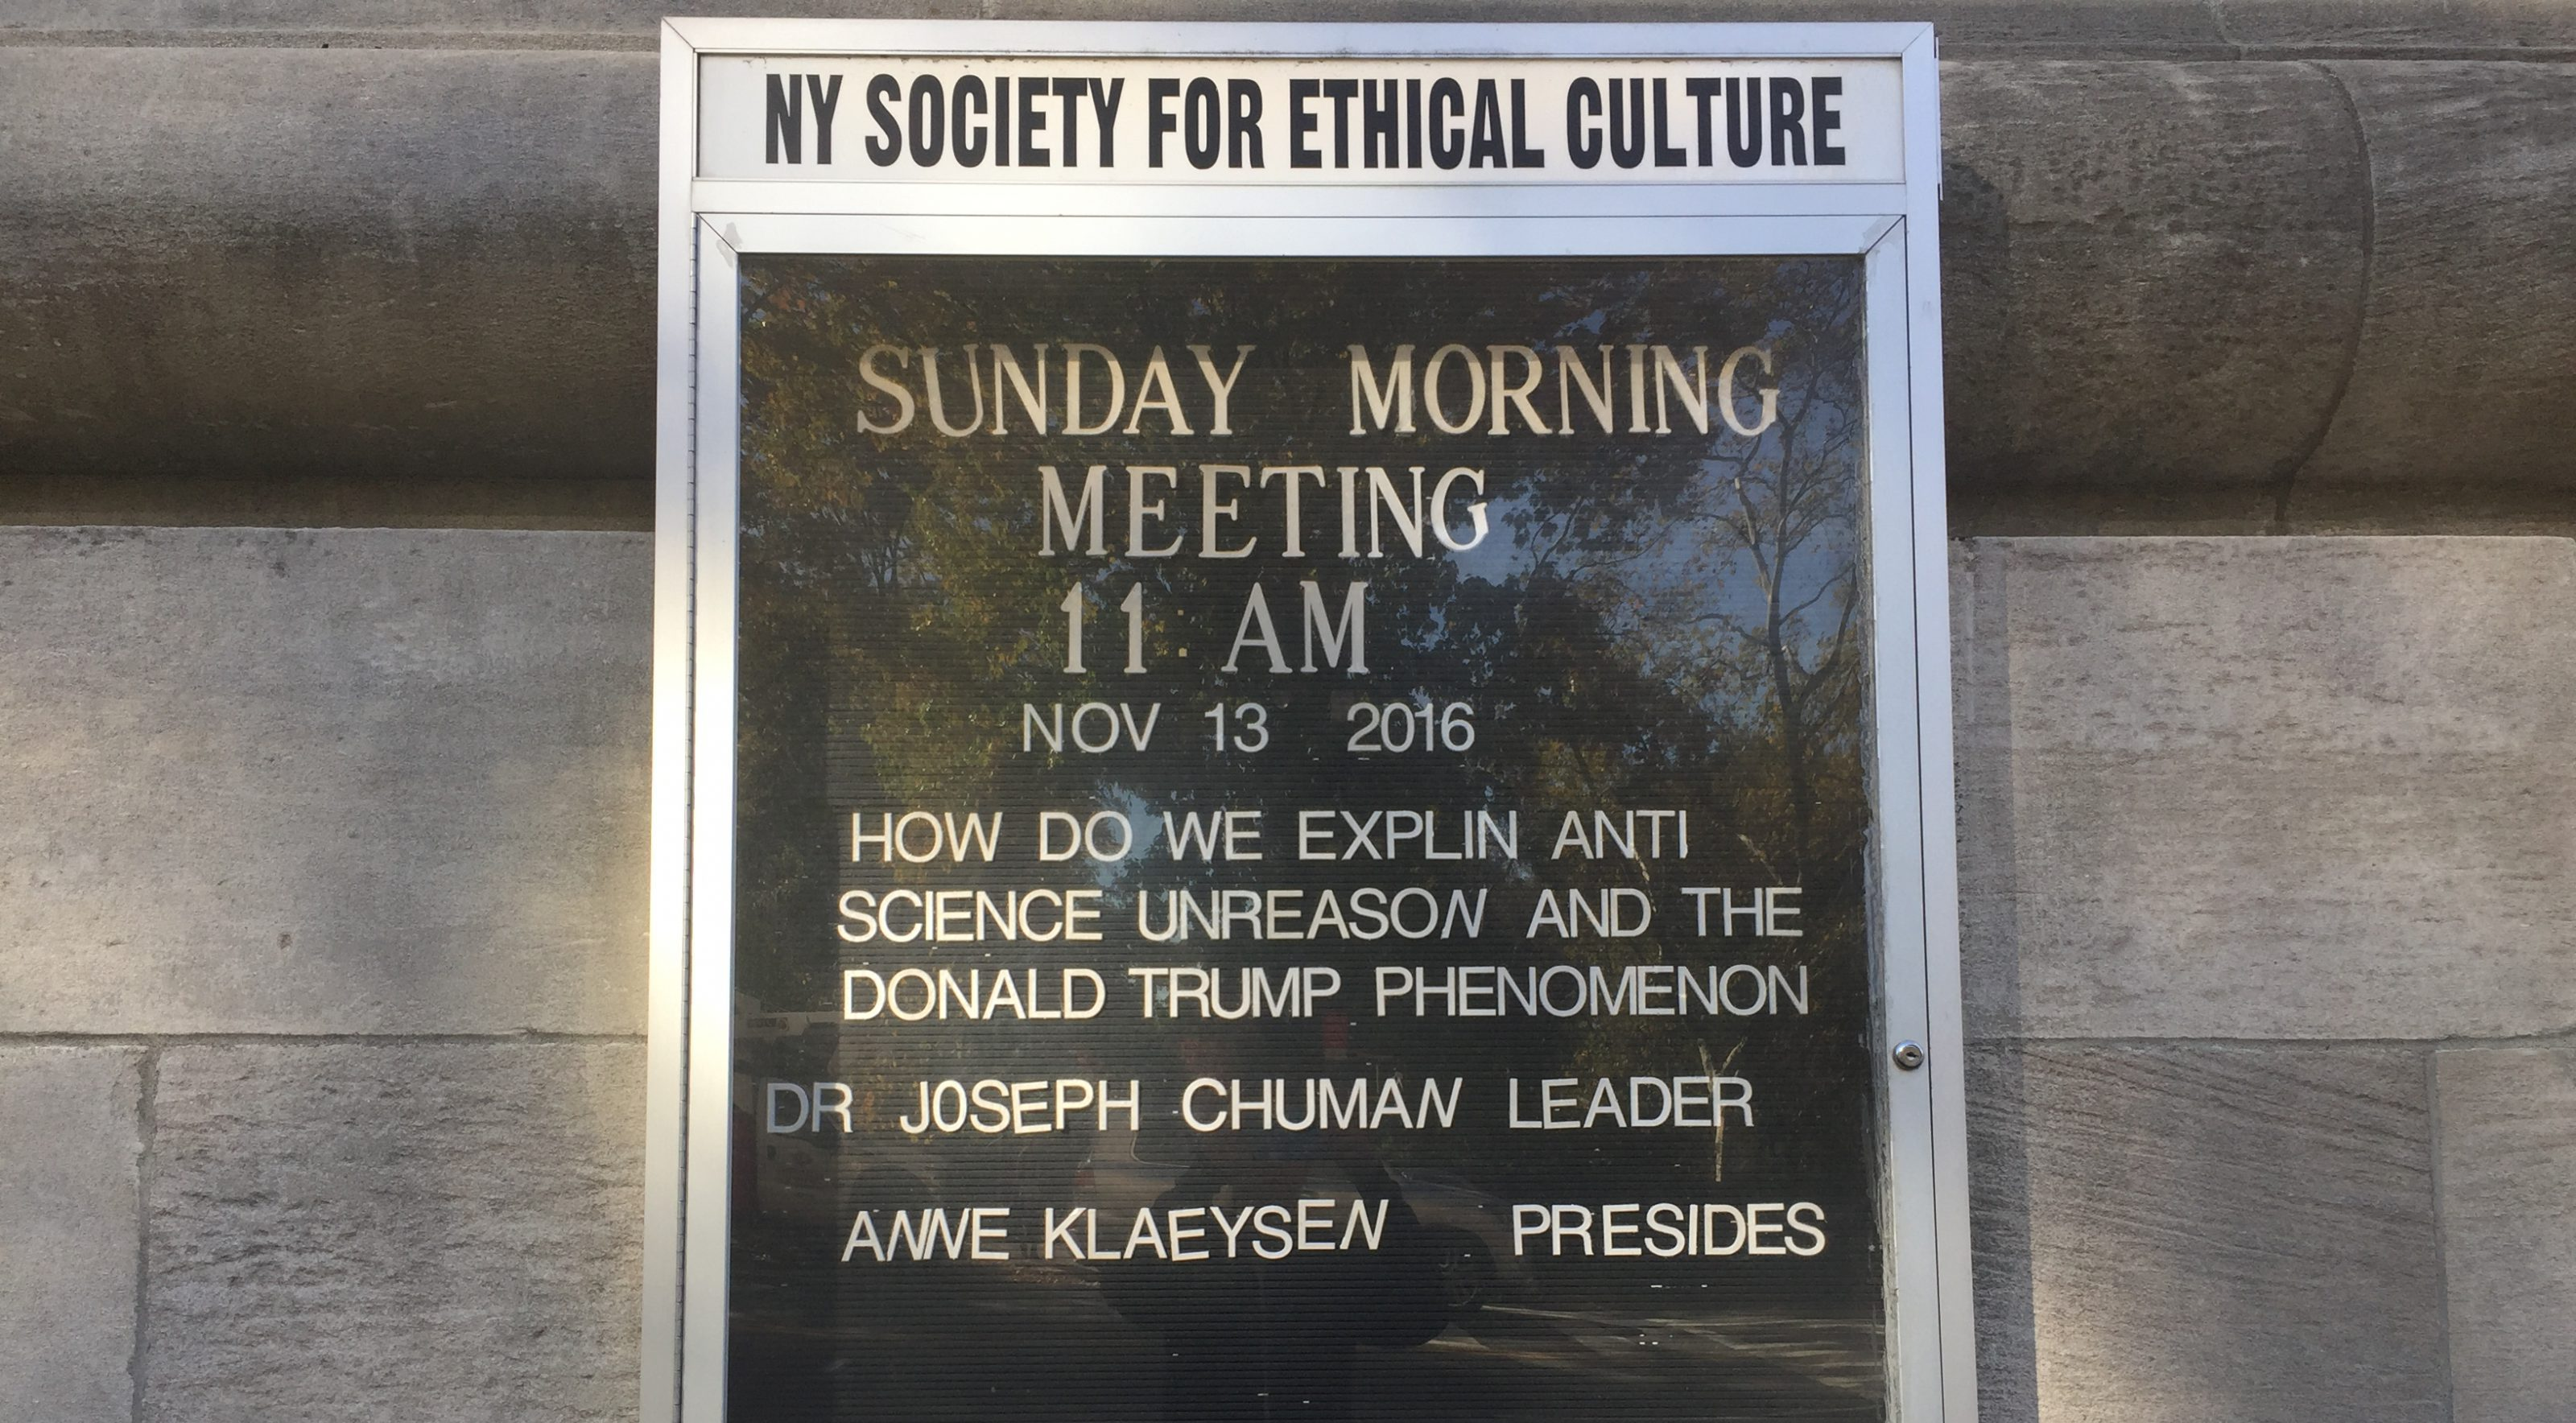 NY Society for Ethical Culture plans a Sunday morning meeting on Nov. 13 about reconciling the election of Donald Trump as US president.